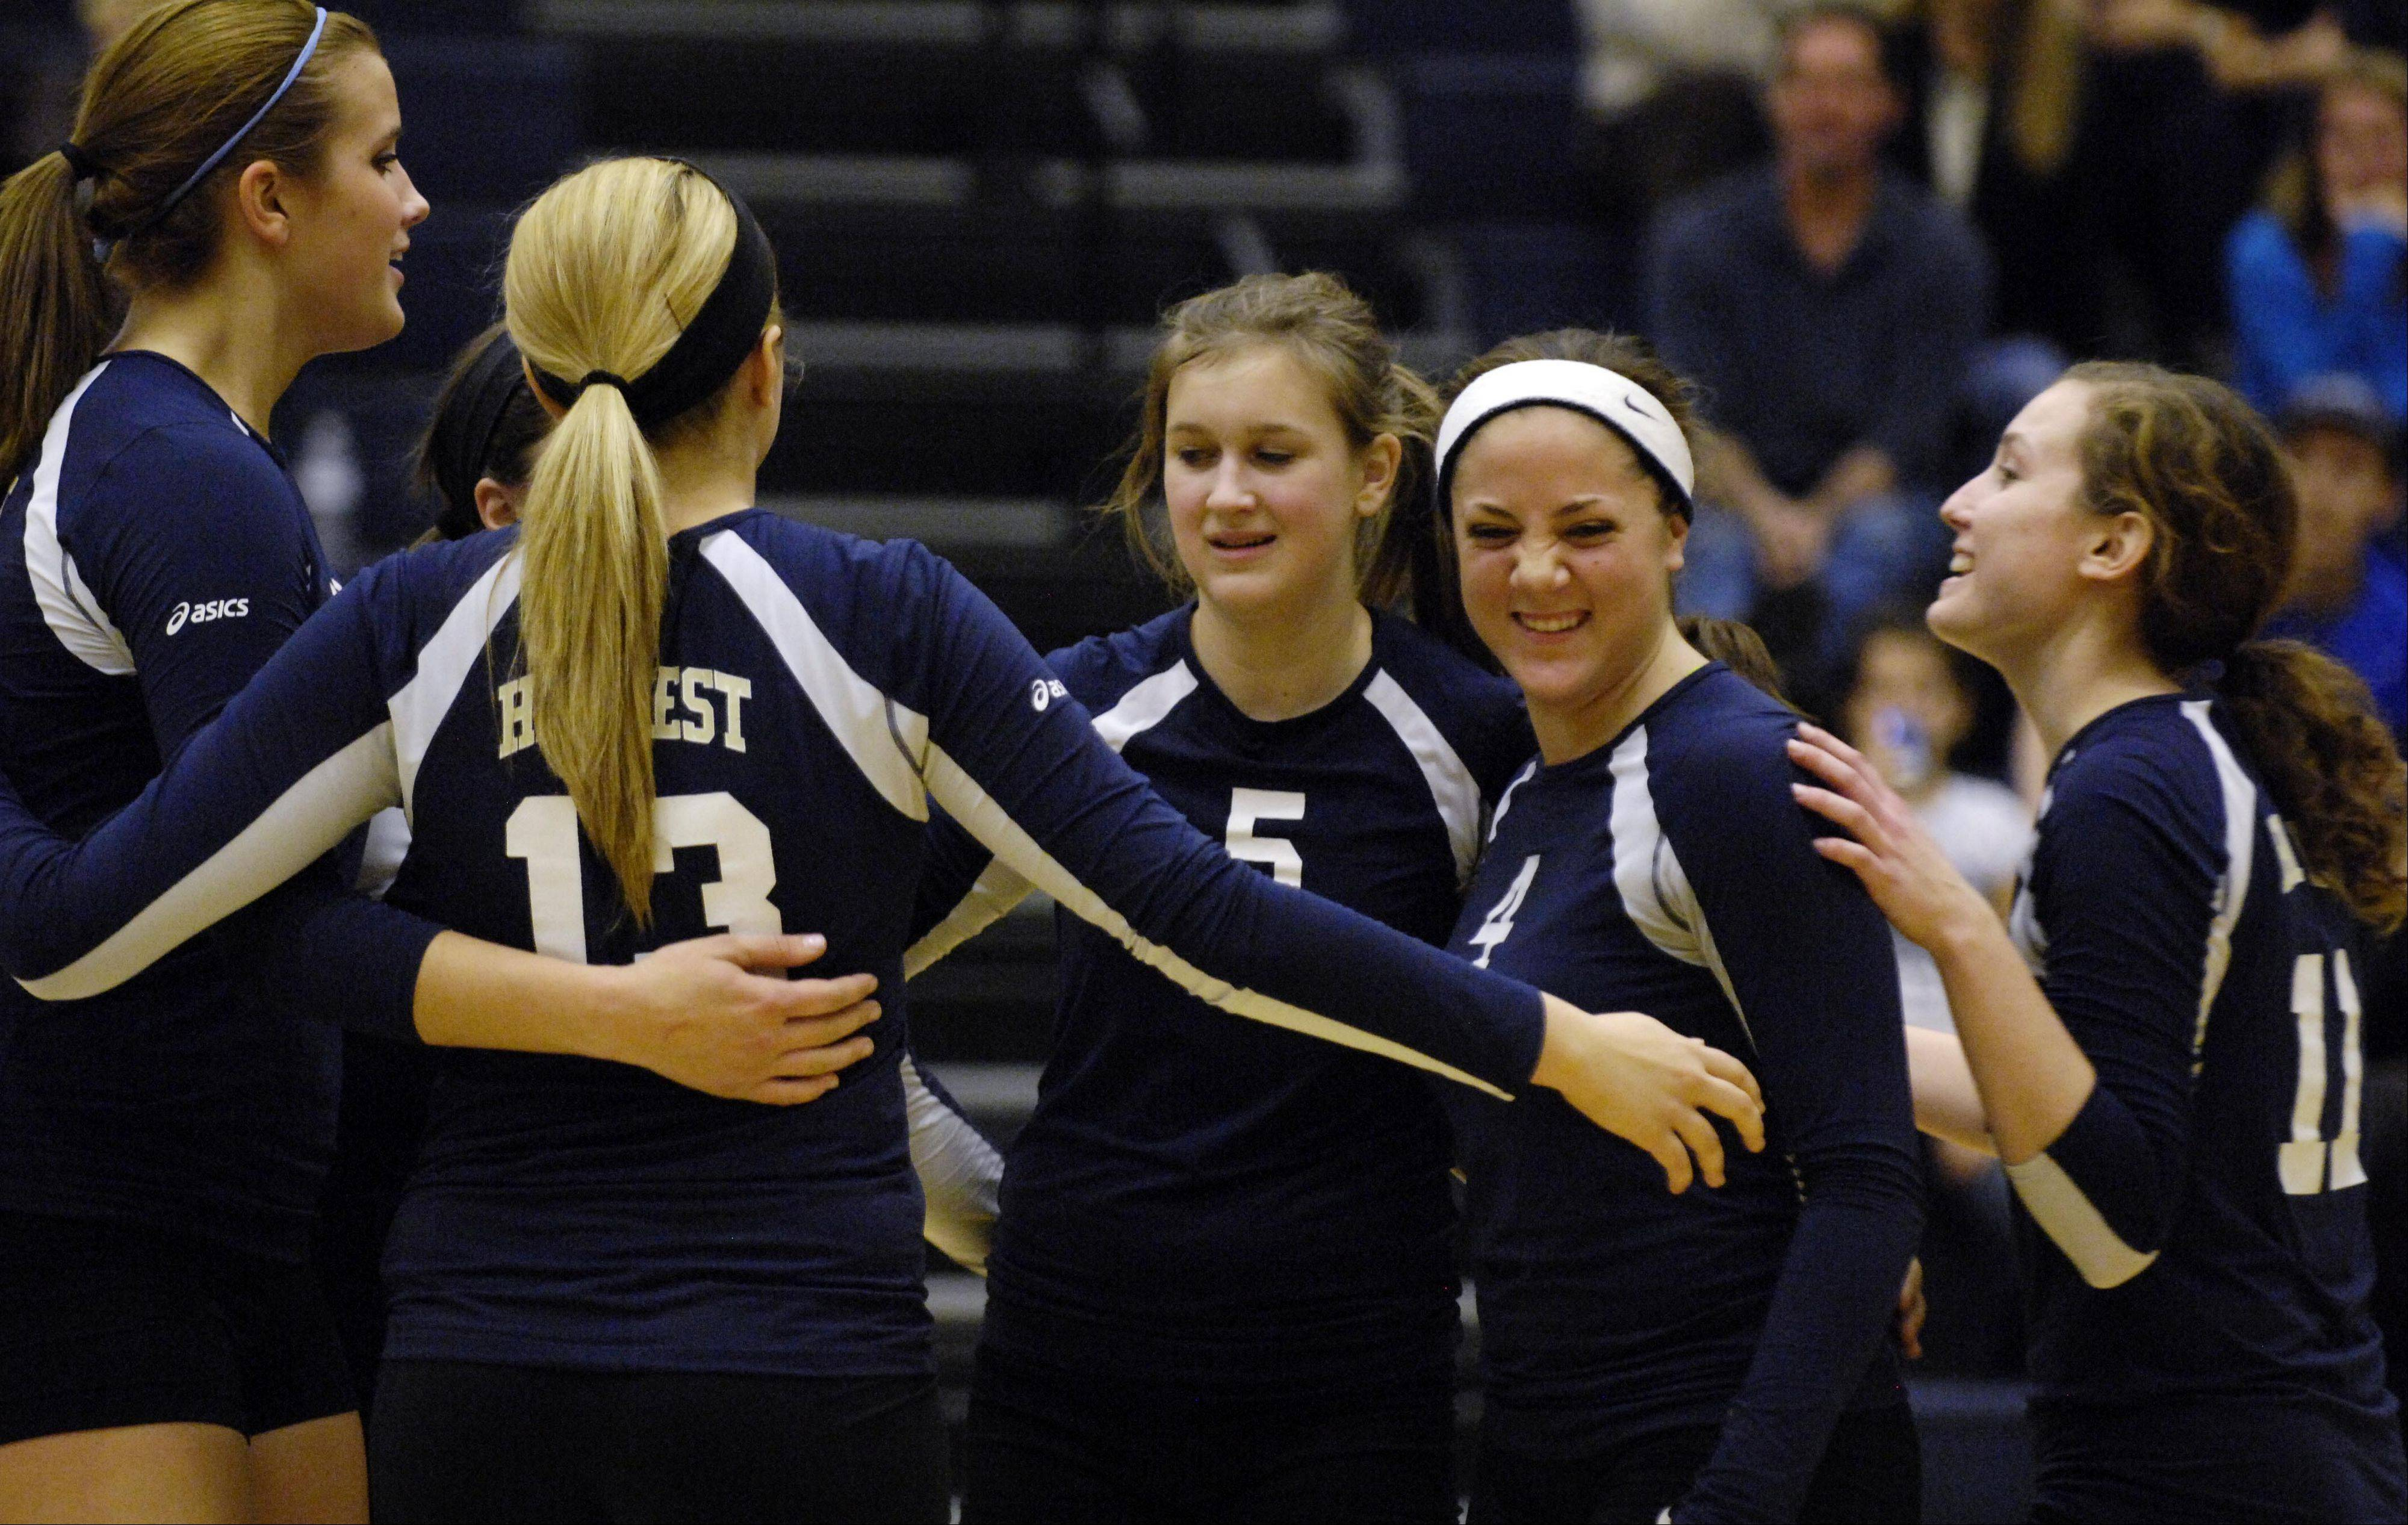 Harvest Christian Academy�s Shayna Manusos (with headband) smiles with teammates as they play Chicagoland Jewish Tuesday during the sectional match in Elgin. Harvest won in two games.